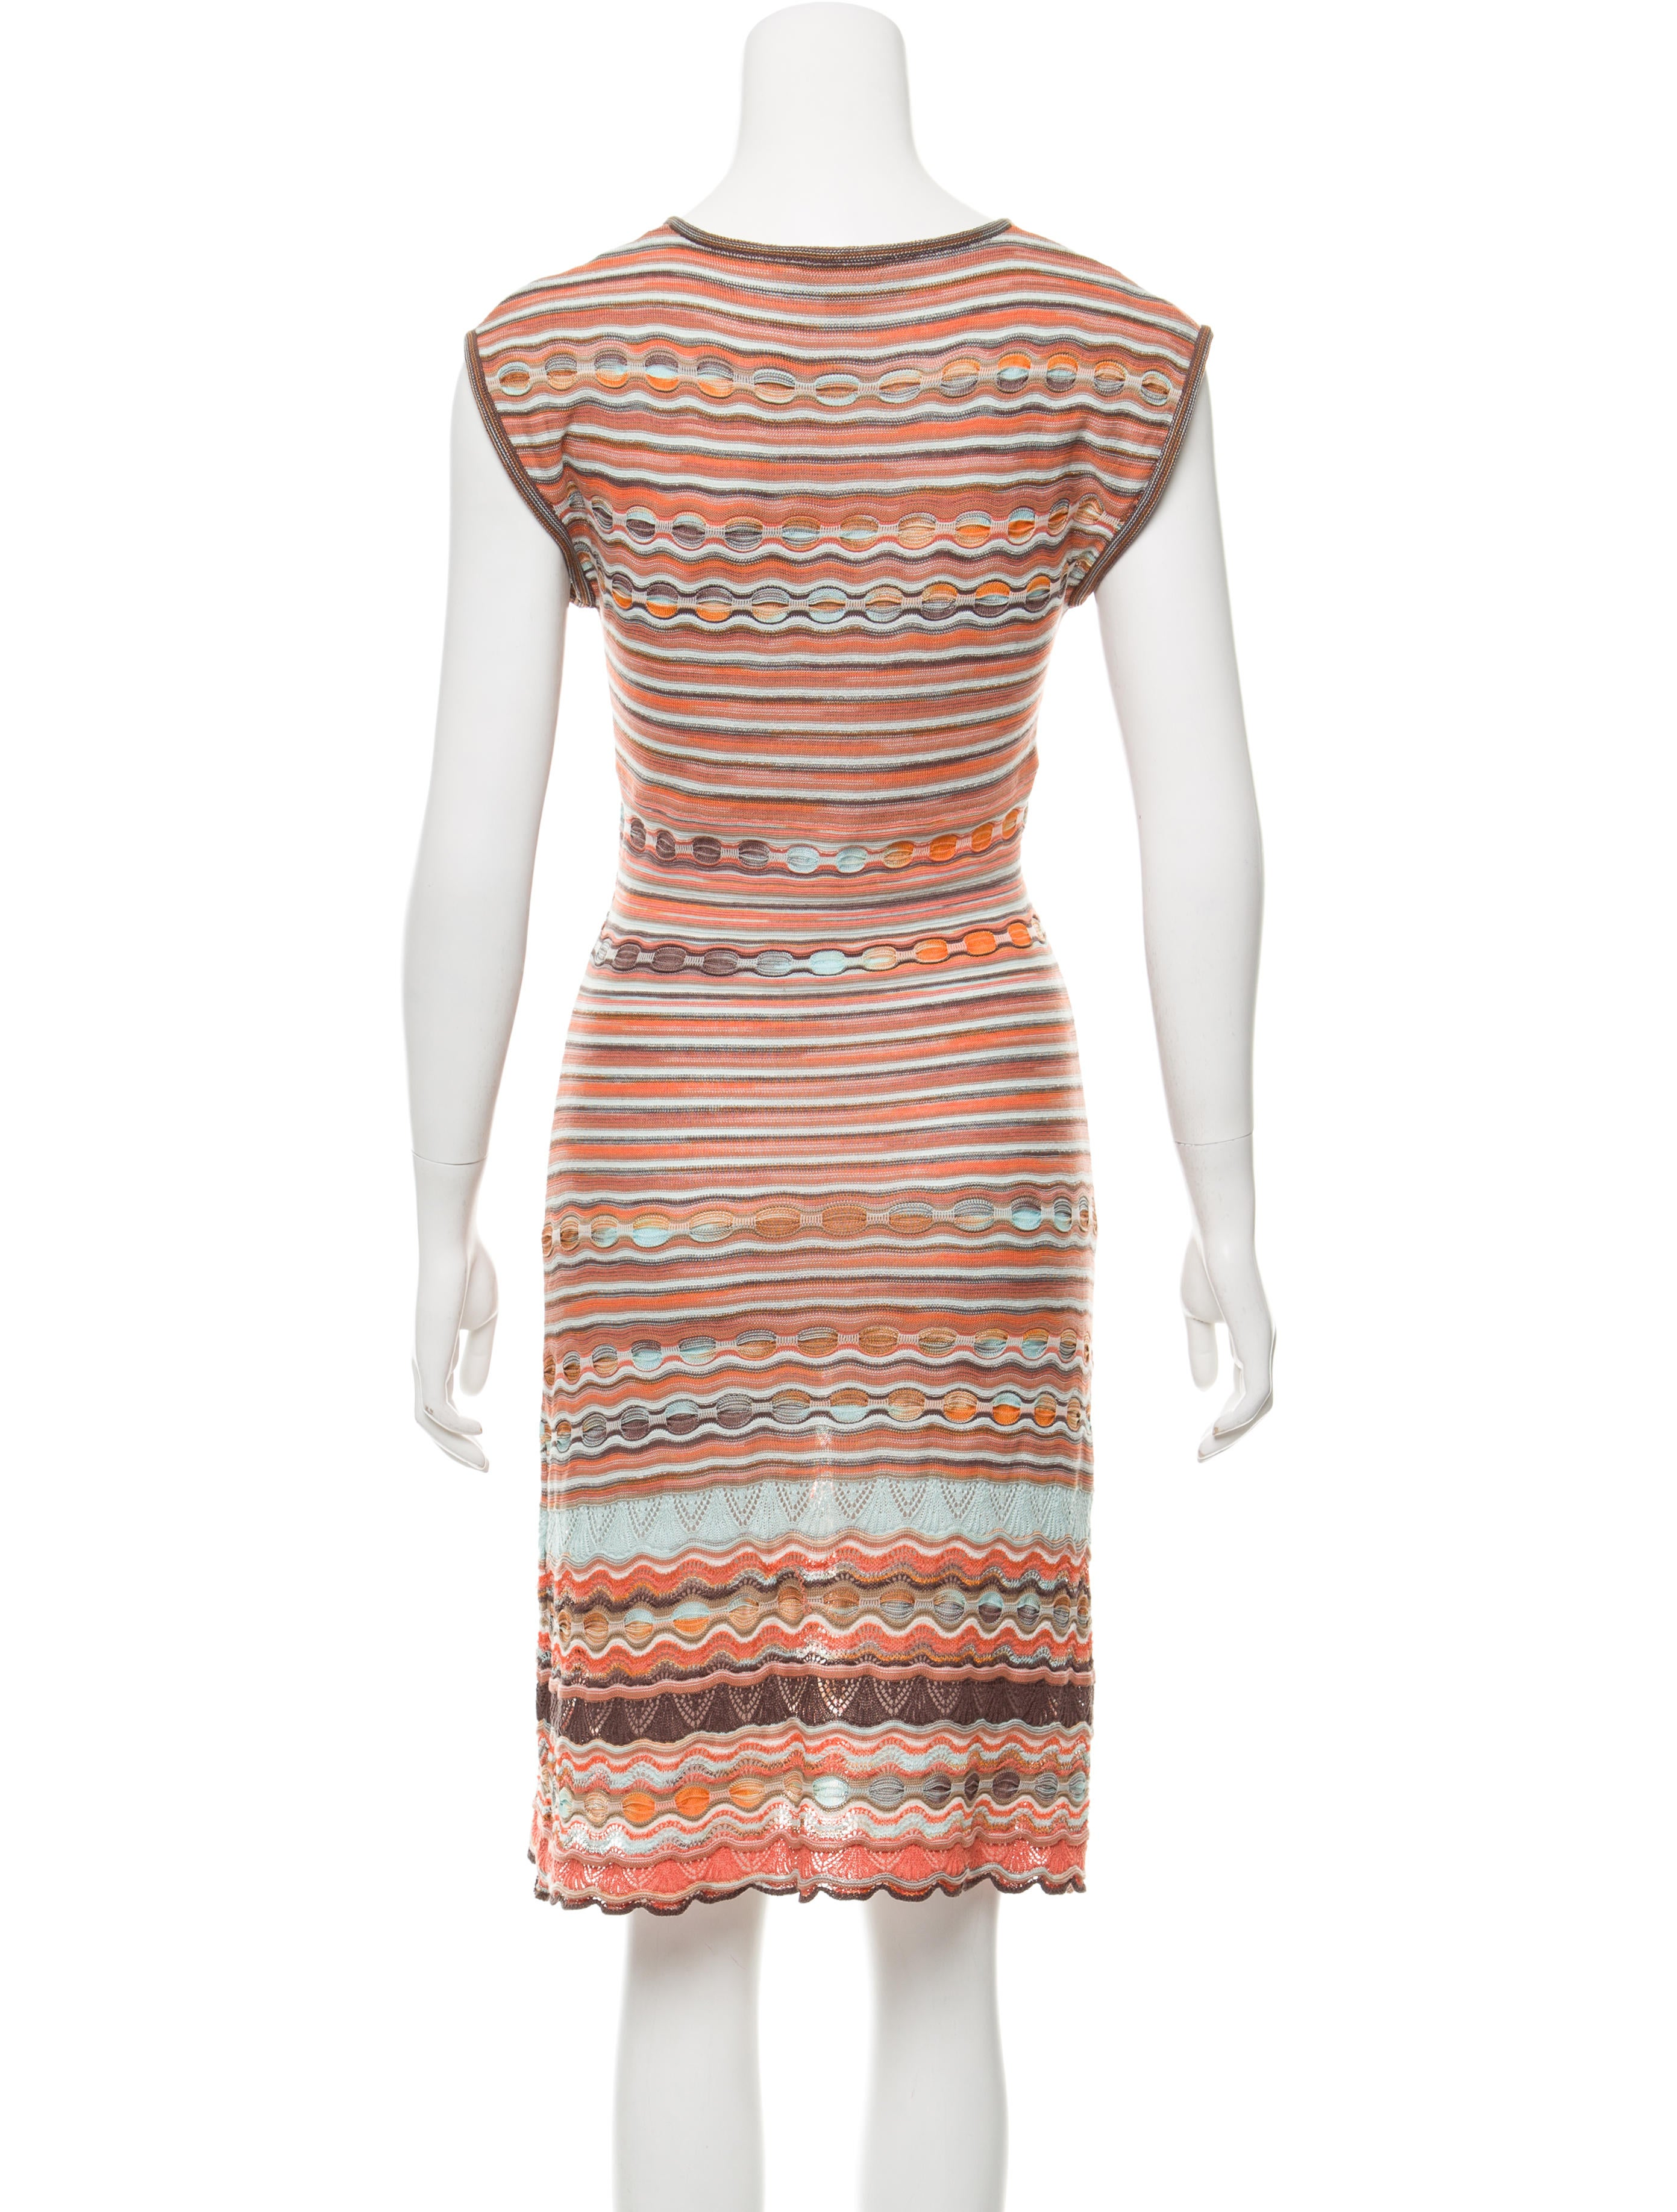 M Missoni Striped Knit Dress - Clothing - WM440458 | The